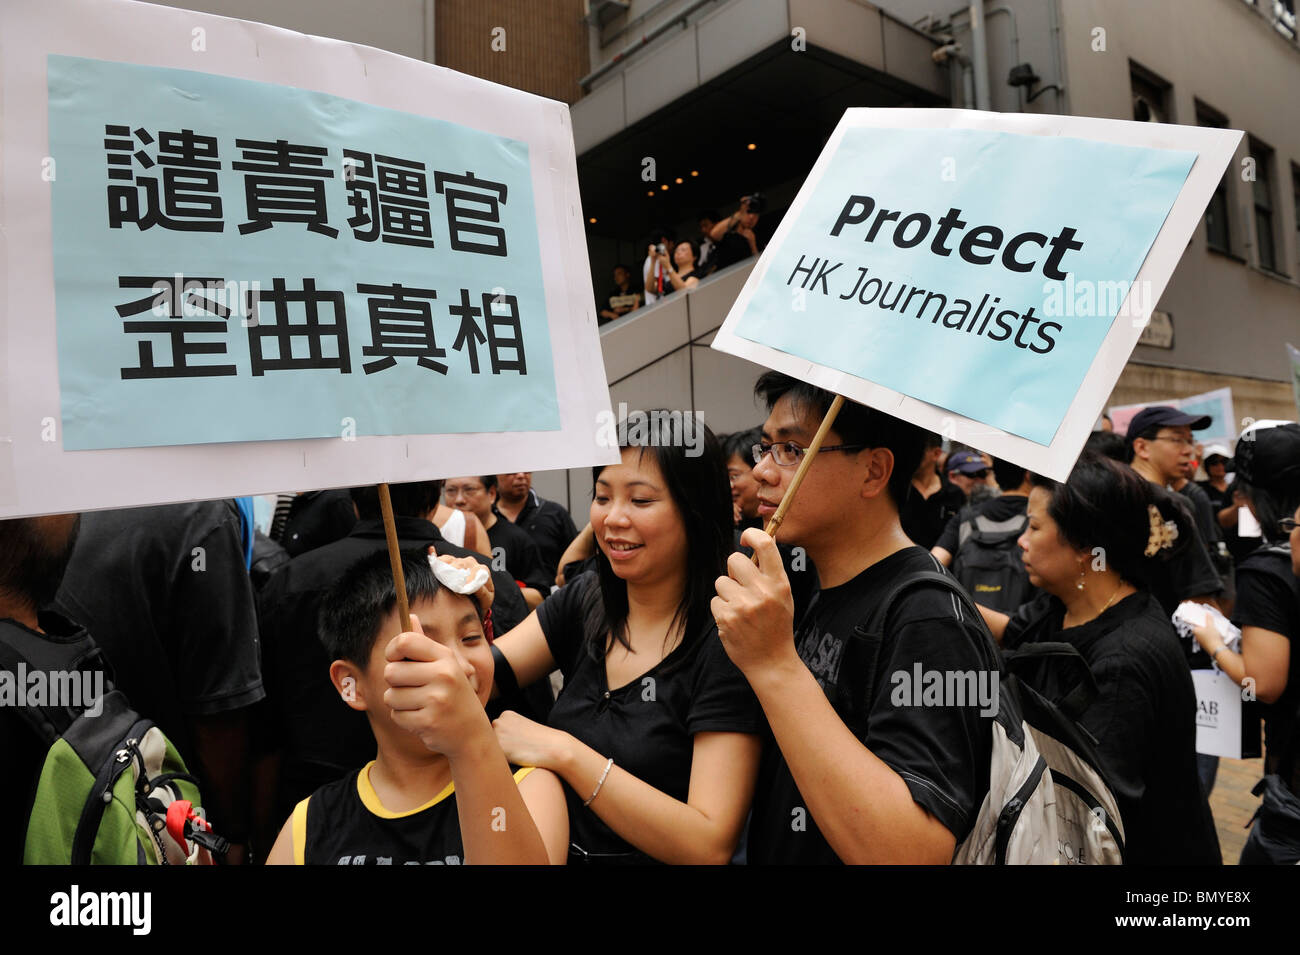 Hong Kong, Media protest in Hong Kong against the rough treatment of the Hong Kong media in Urumqi in China. - Stock Image